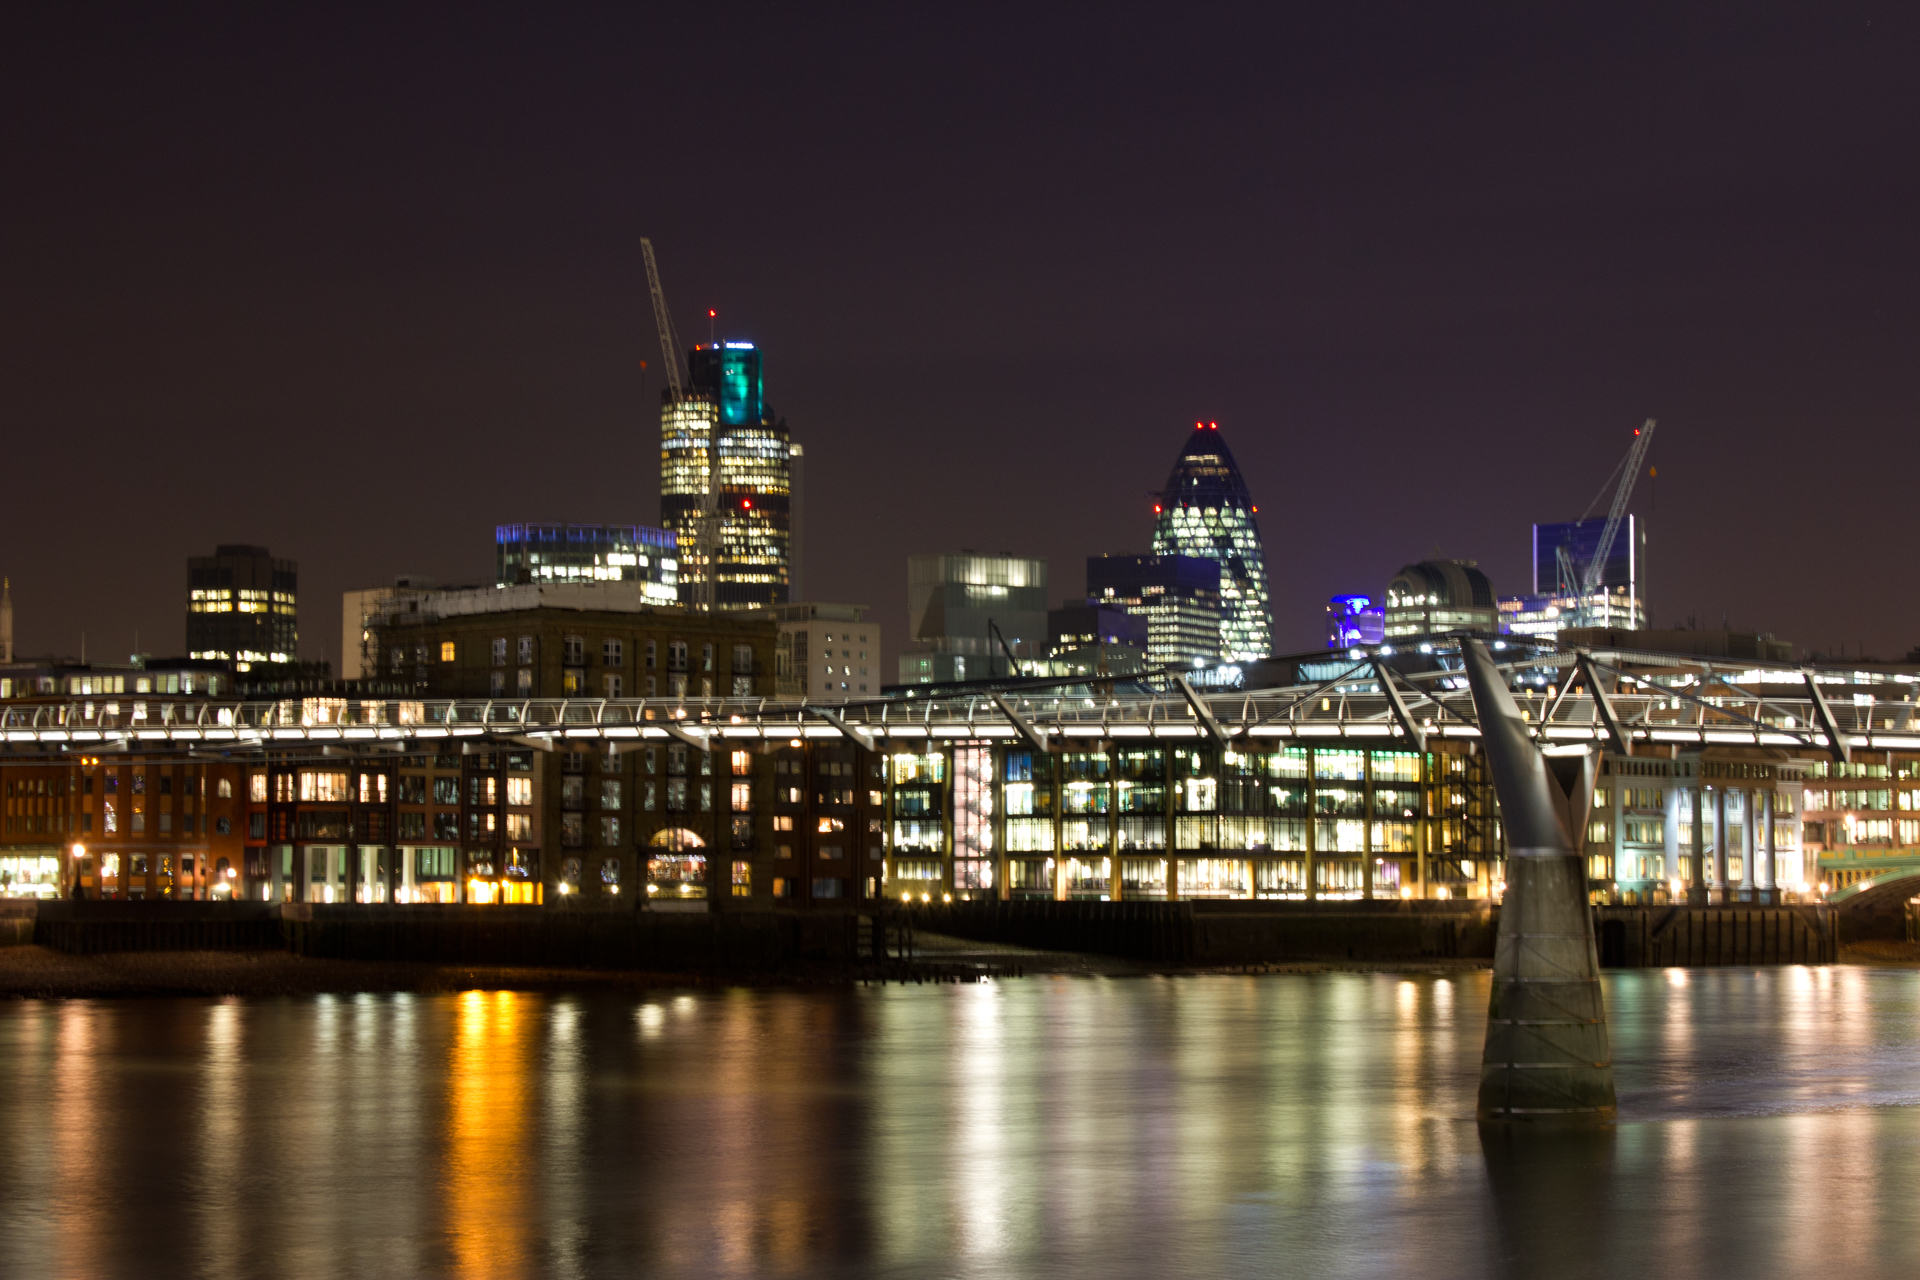 The London skyline at night blurred due to camera shake caused by pressing the shutter